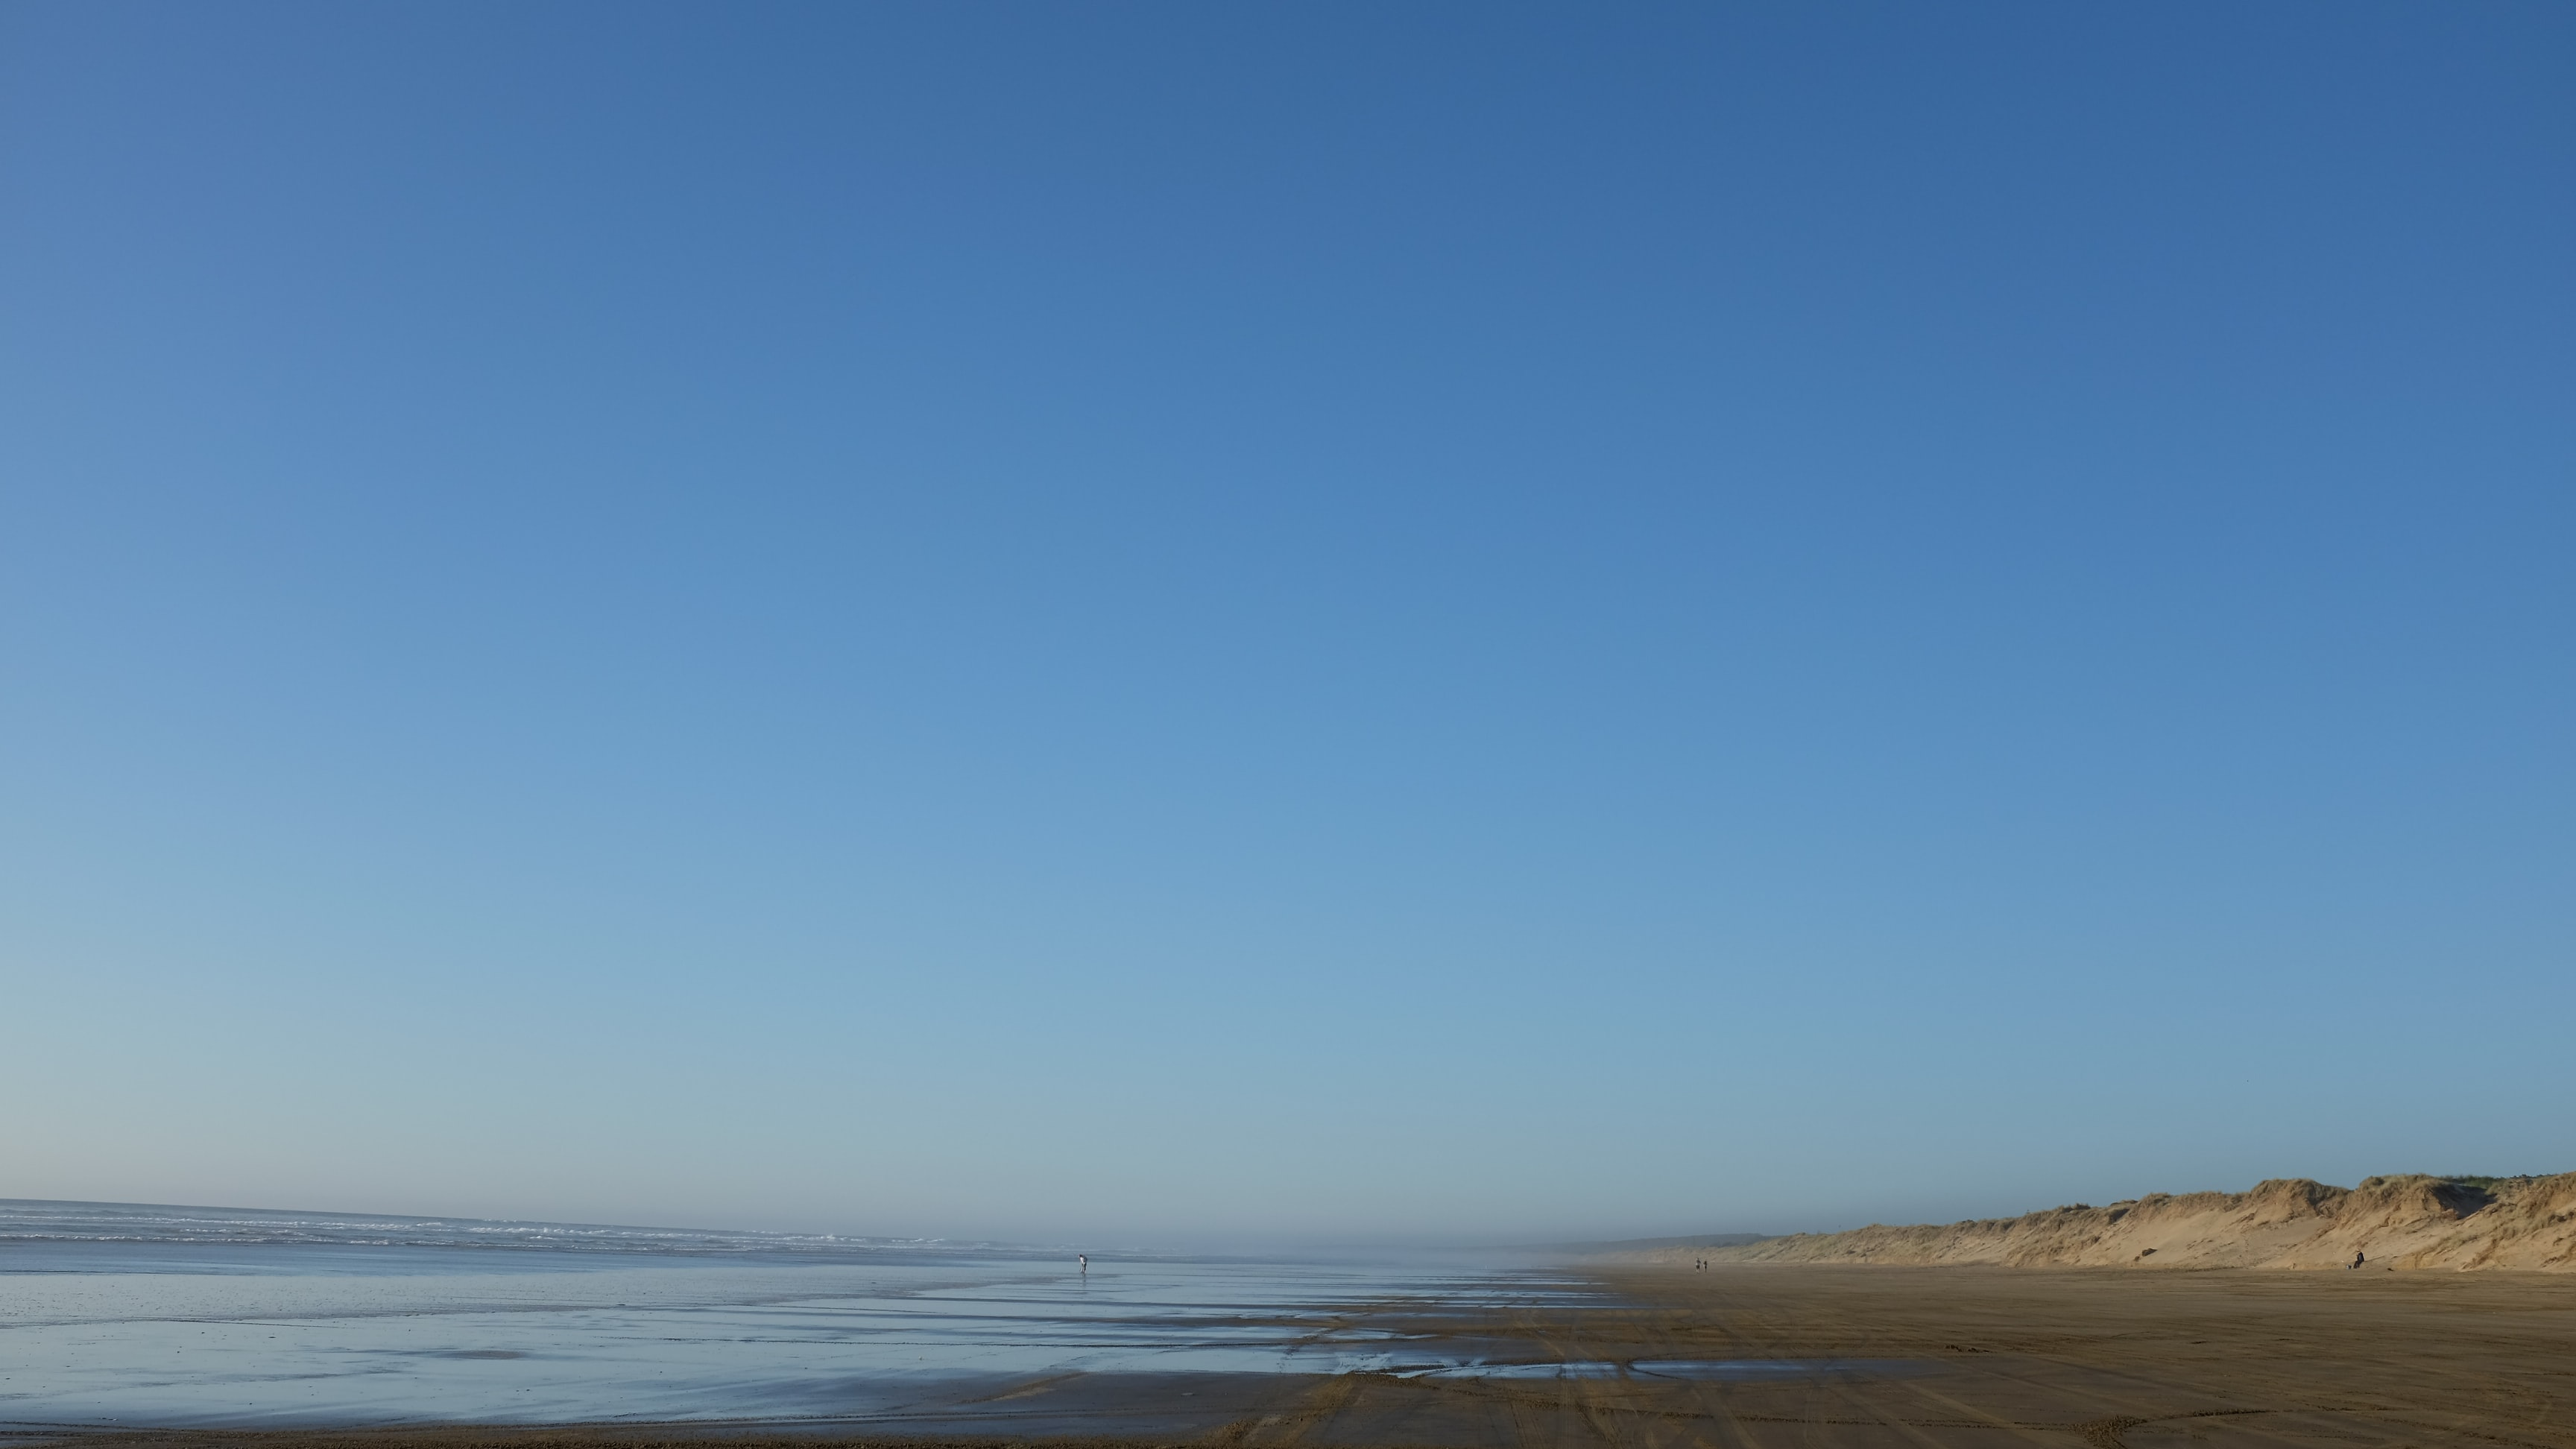 body of water and gray seashore under blue sky